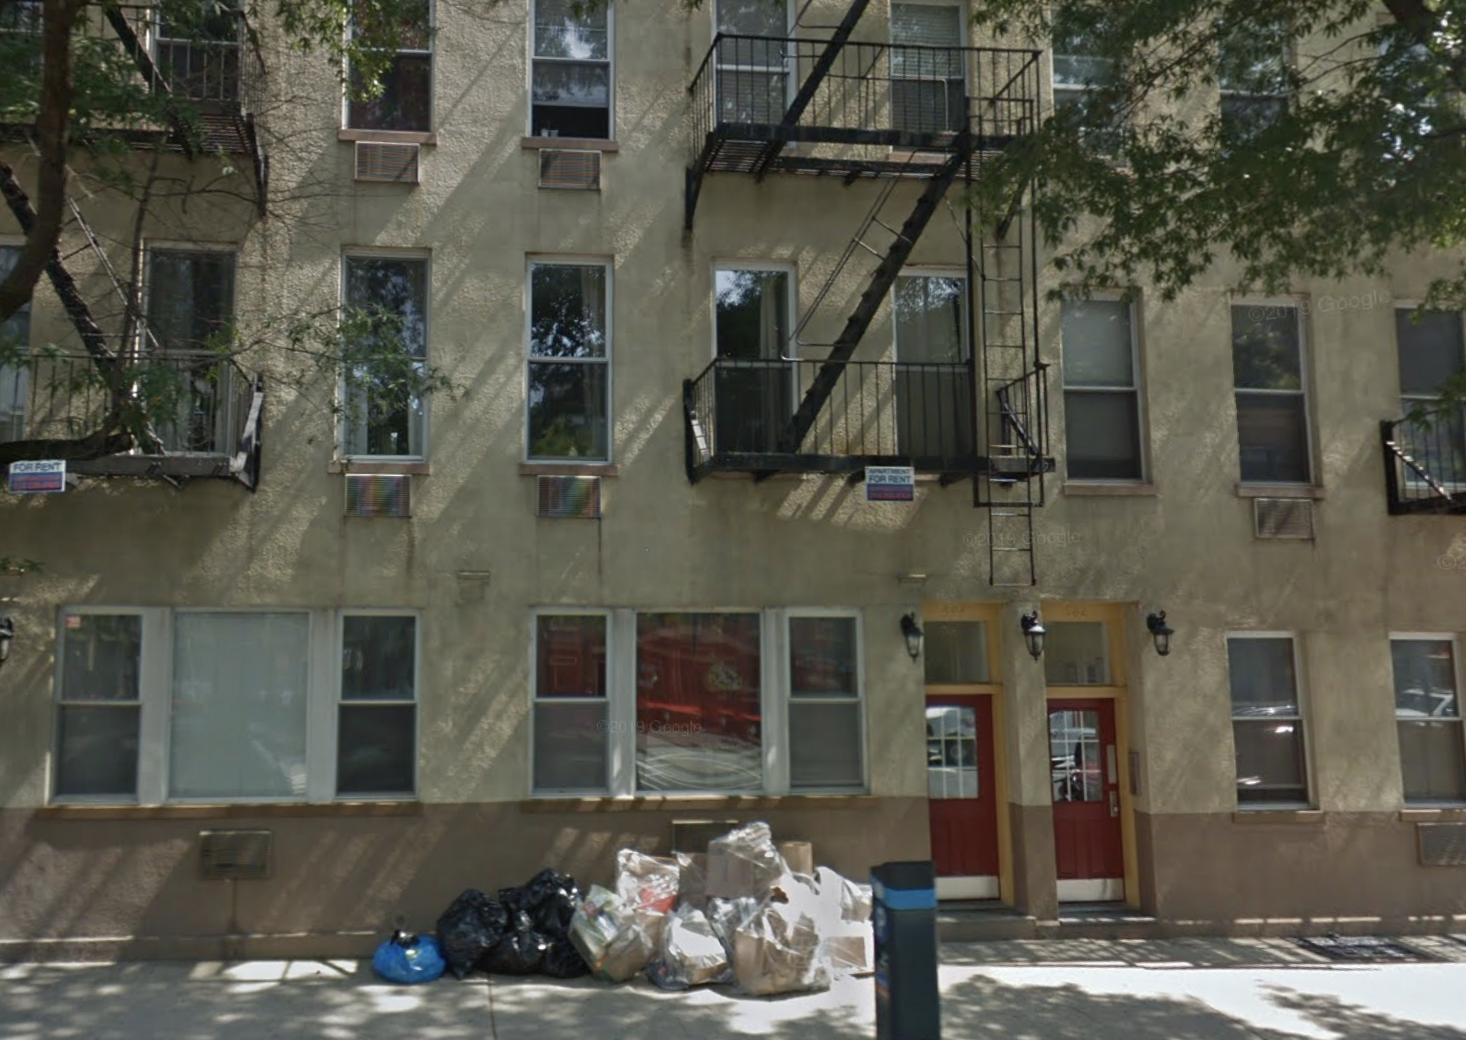 Infamous landlord Steve Croman sued for allegedly illegally deregulating Greenwich Village apartments